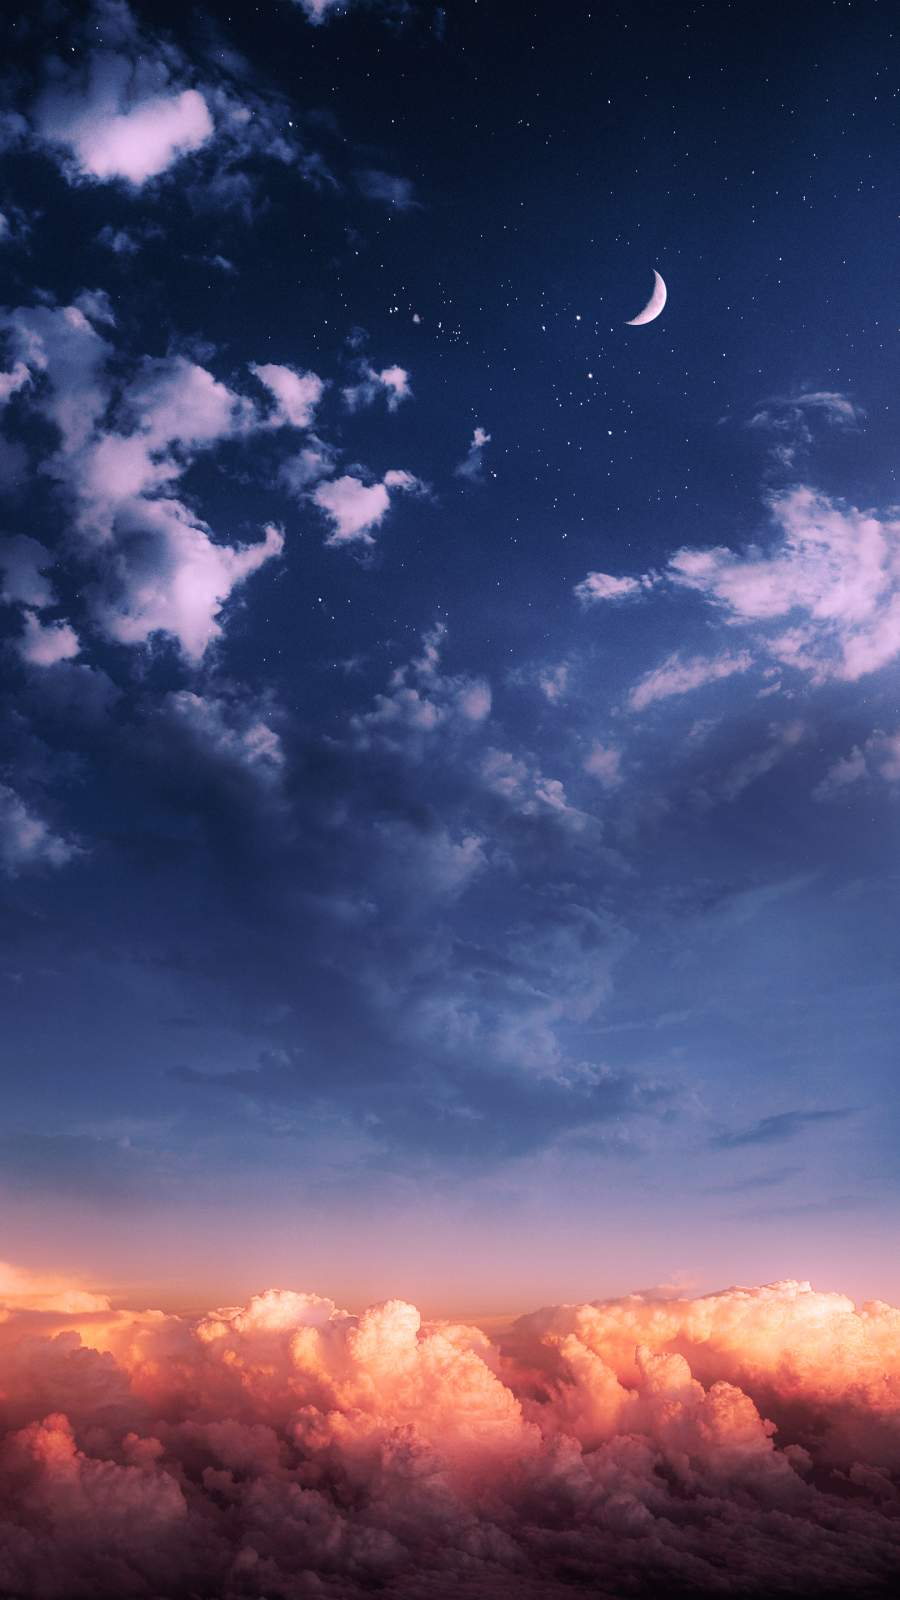 Cloudy Sky iPhone Wallpaper